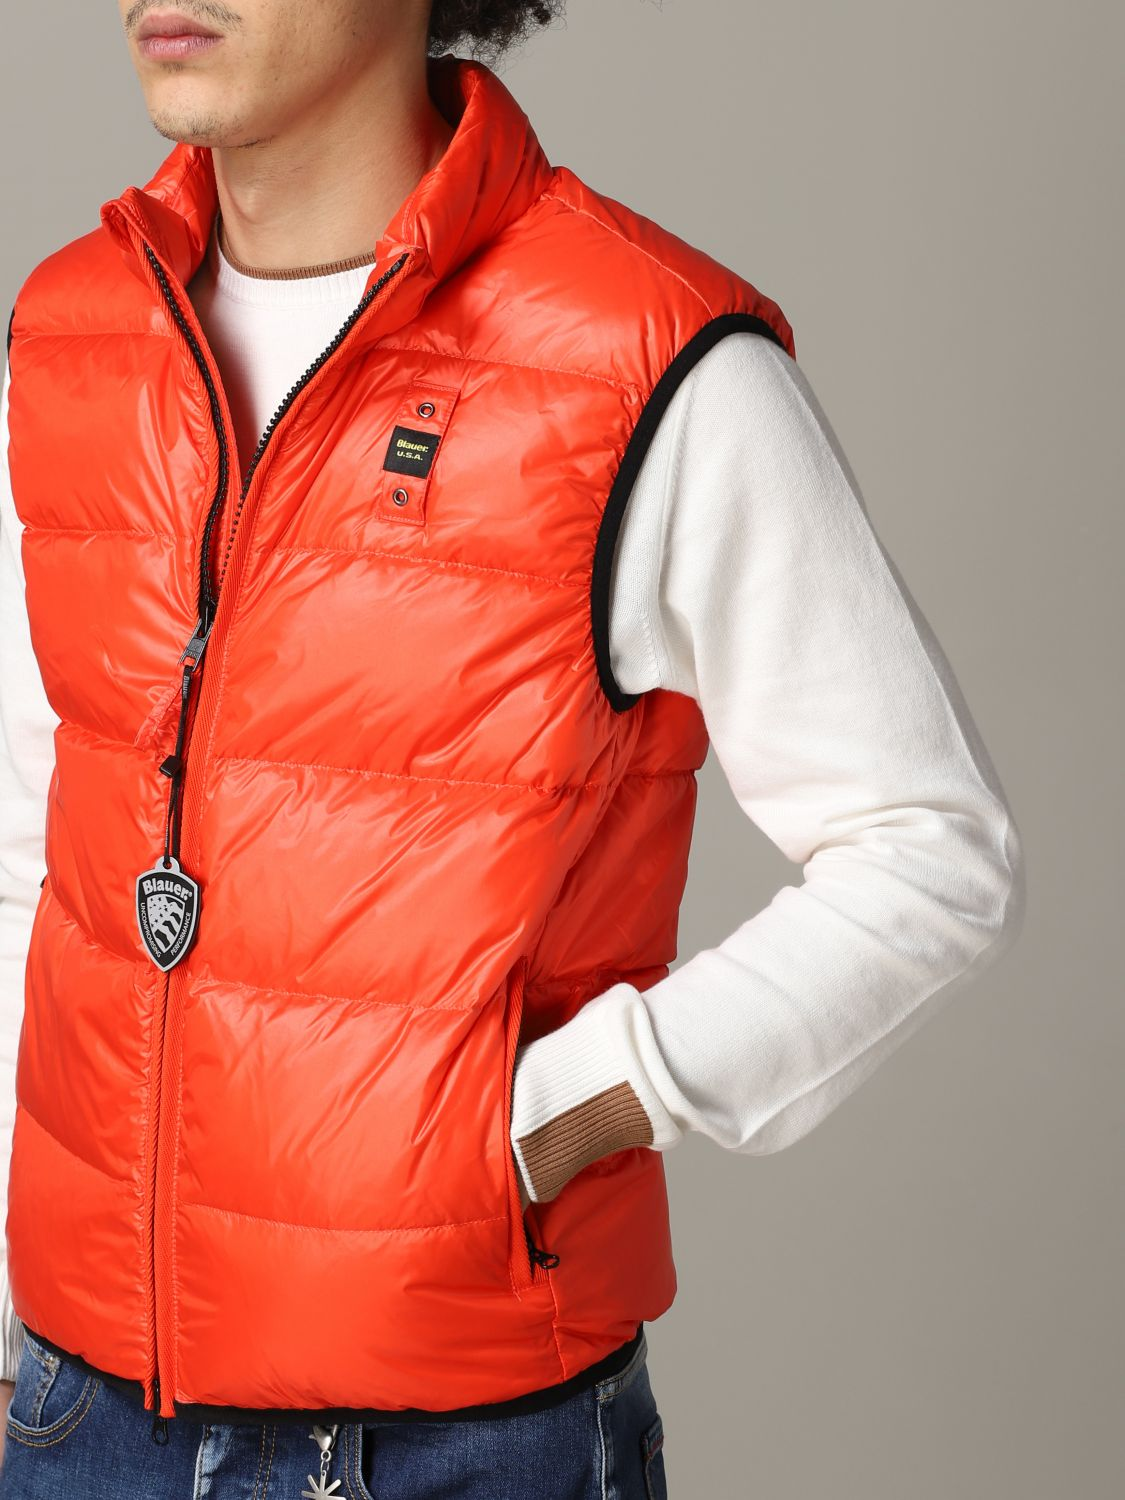 Suit vest Blauer: Suit vest men Blauer orange 5